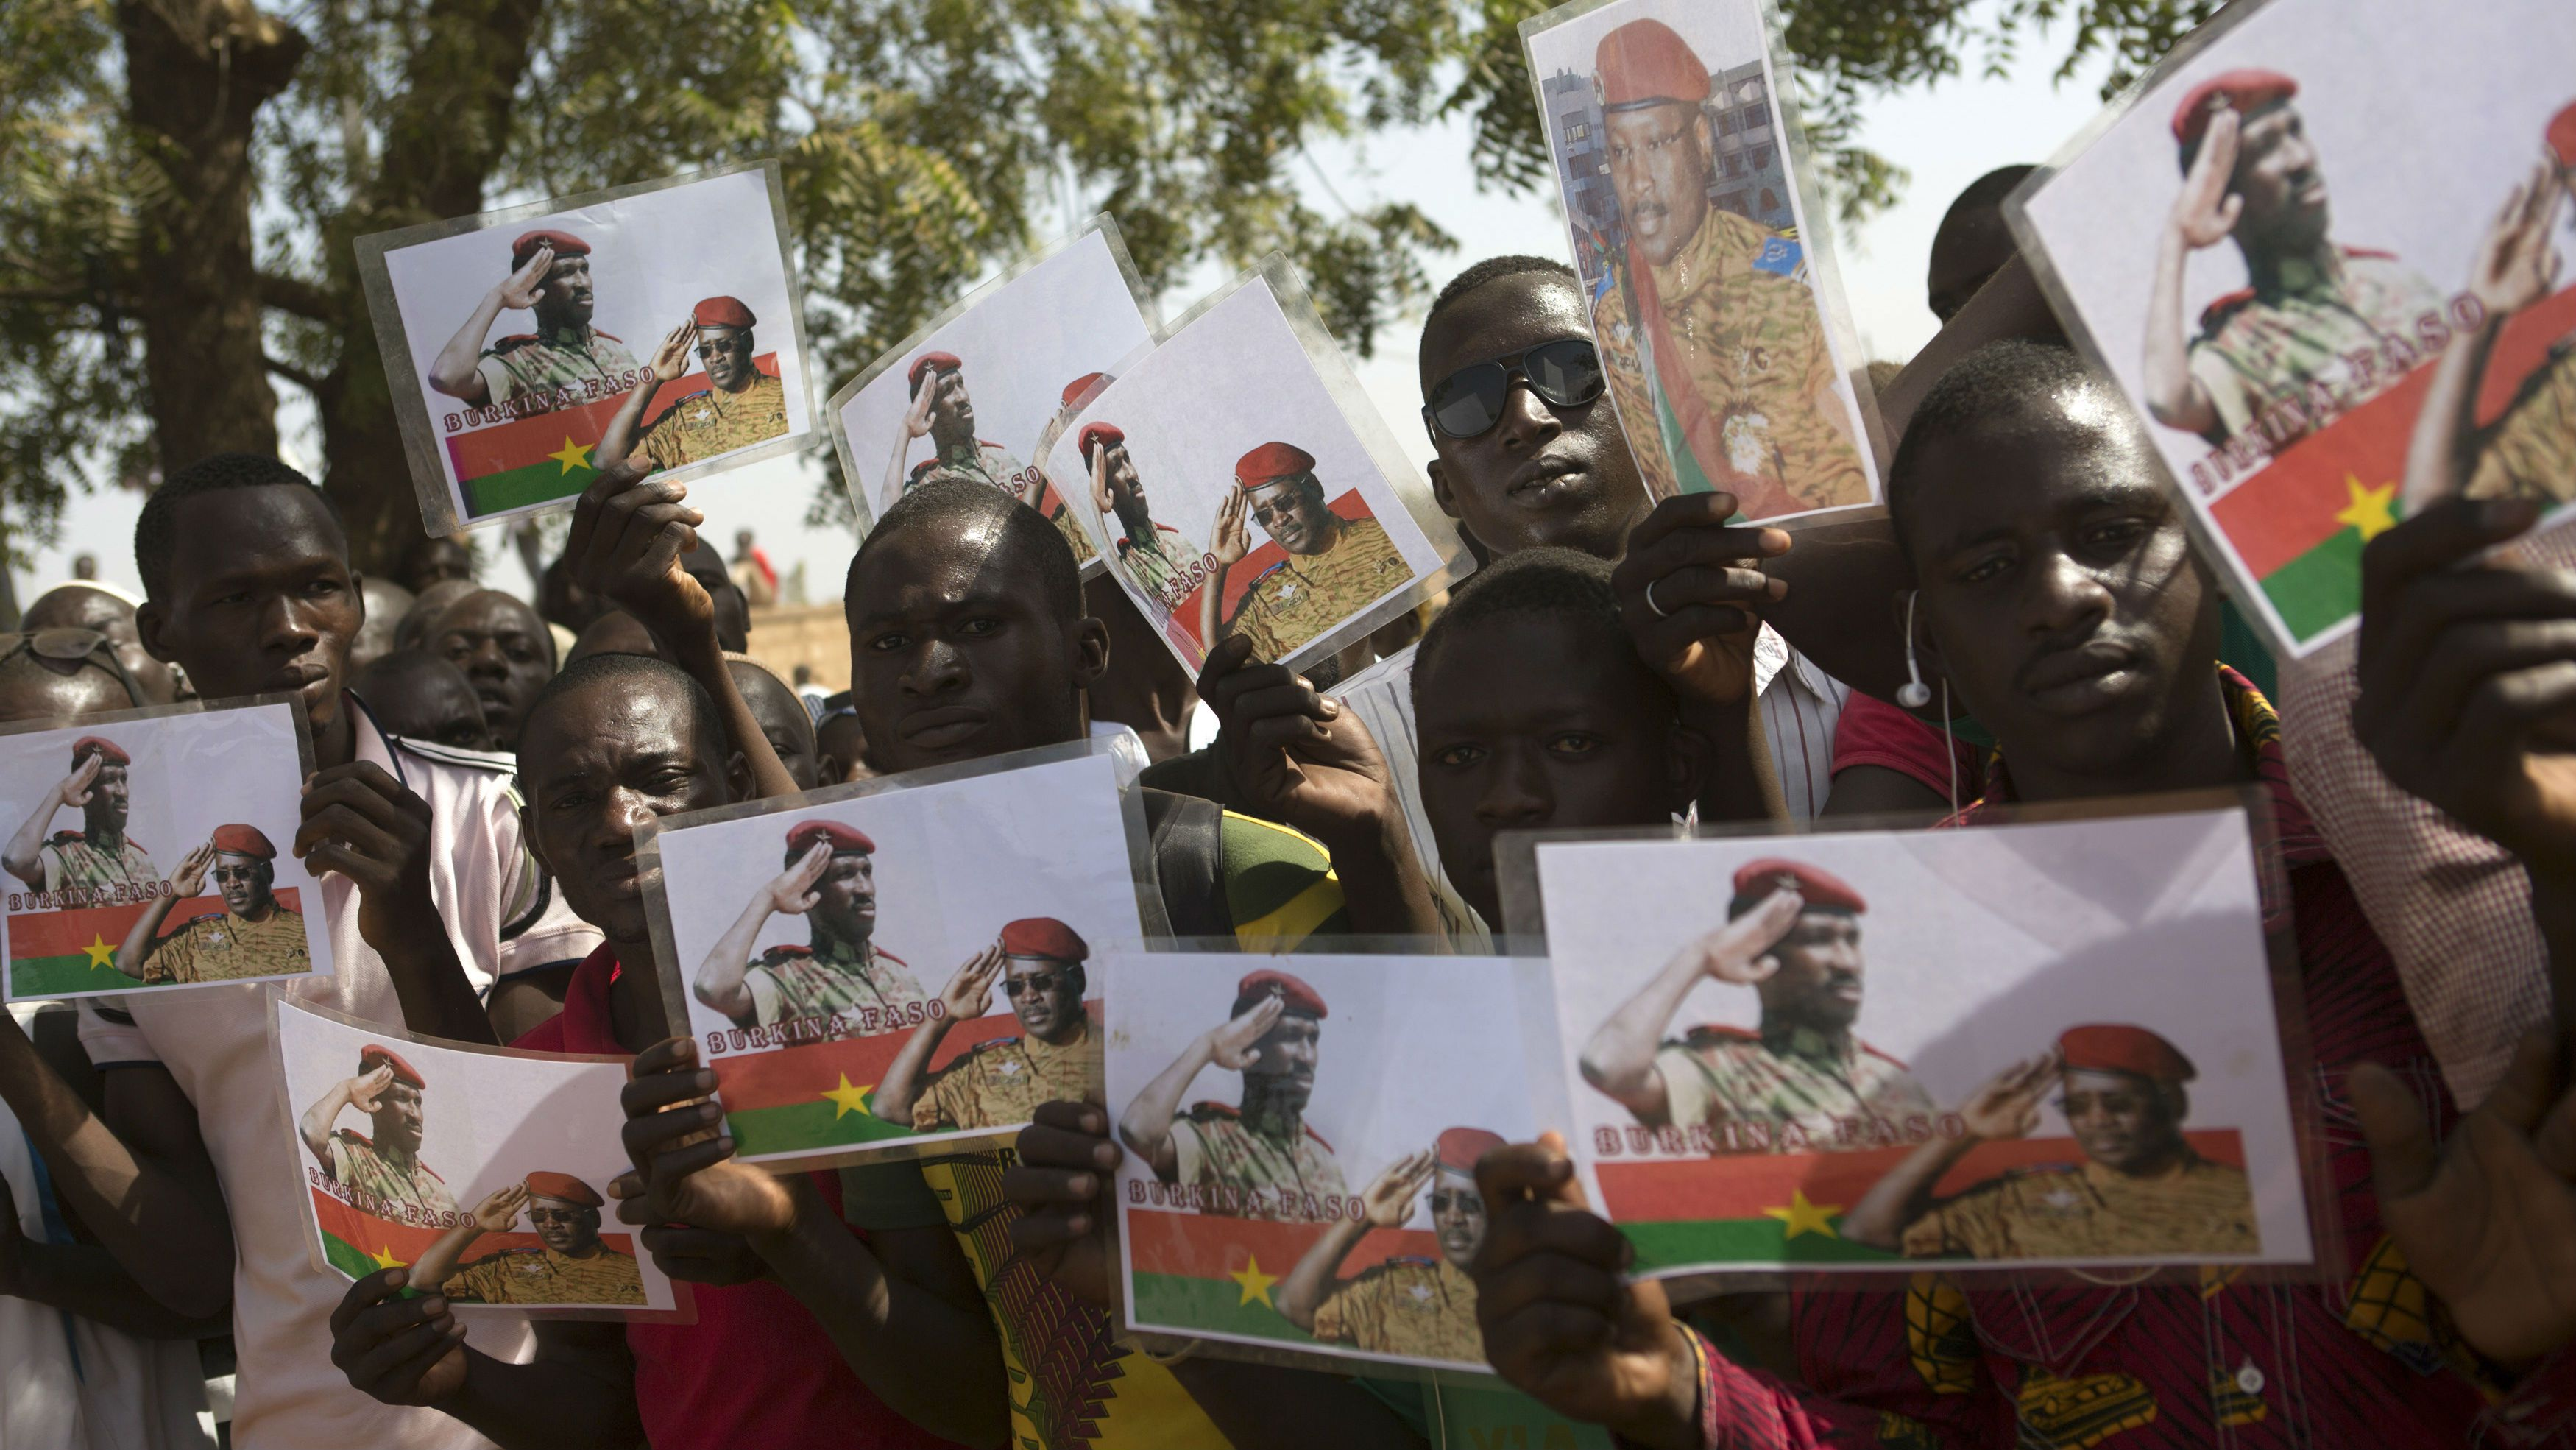 People hold pictures showing former president Thomas Sankara and Prime Minister Isaac Zida during a funeral service for six people killed during the popular uprising of October 30 and 31 in Ouagadougou, December 2, 2014. REUTERS/Joe Penney (BURKINA FASO - Tags: POLITICS OBITUARY CIVIL UNREST SOCIETY)